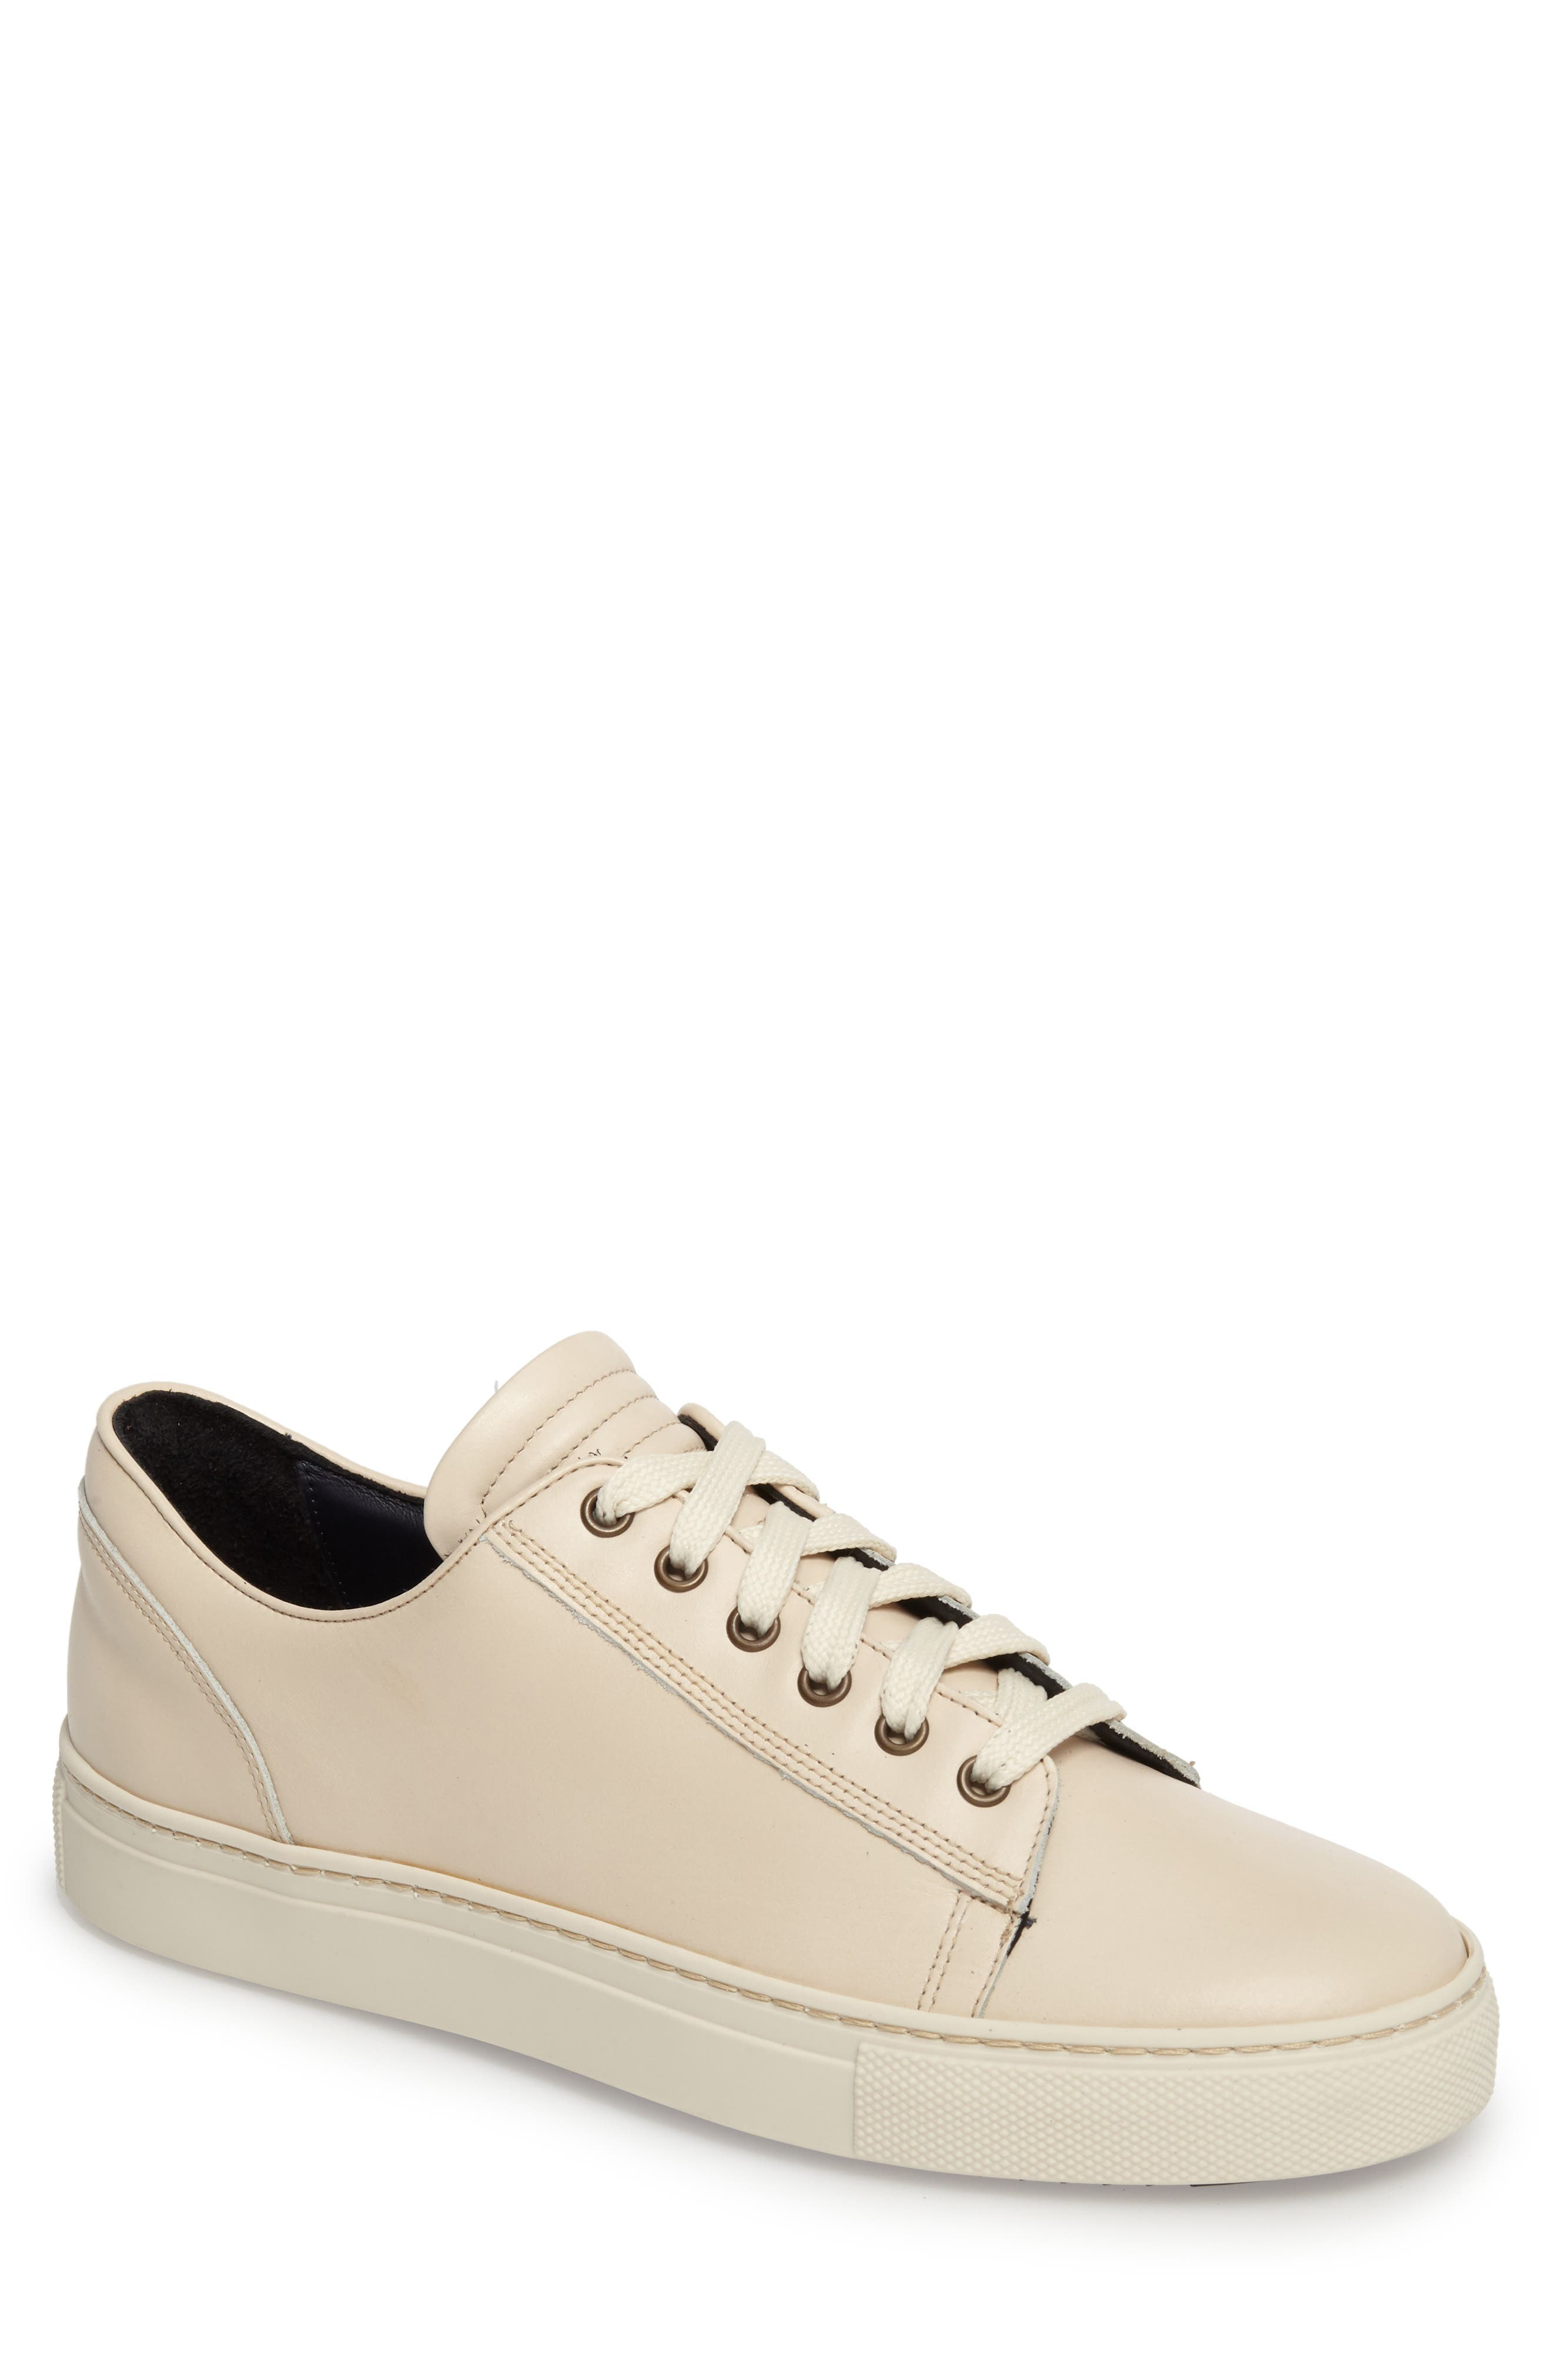 Taranto Sneaker,                         Main,                         color, Off White Leather